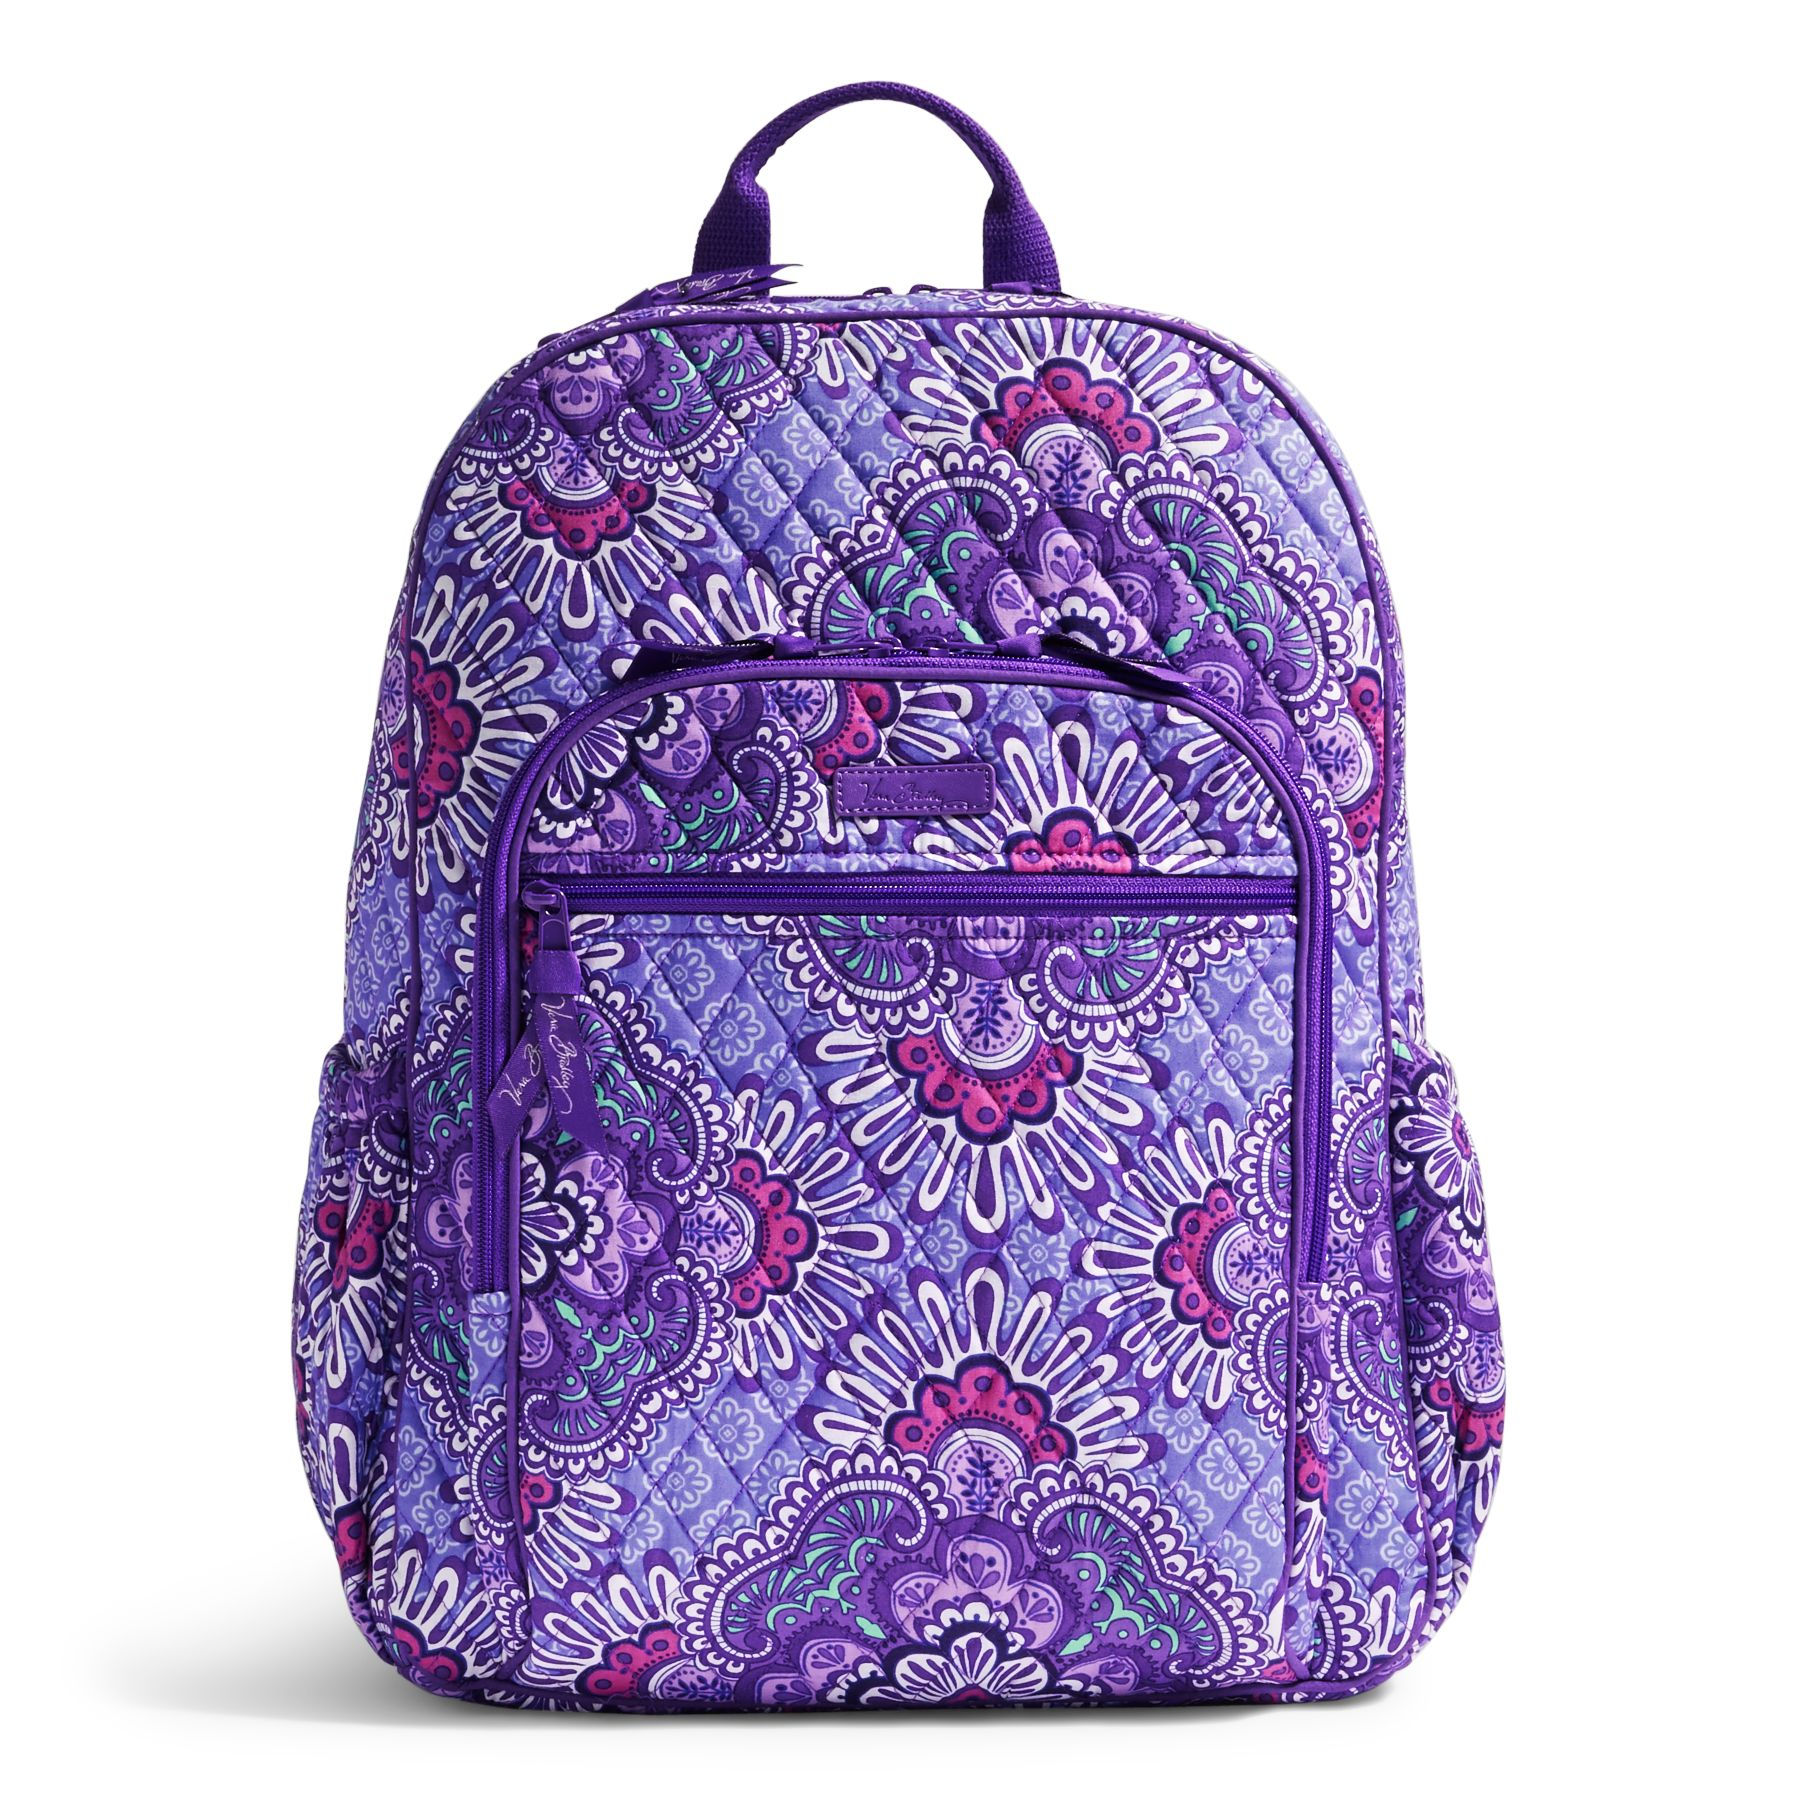 79111d86fe2b UPC 886003388037 product image for Vera Bradley Campus Tech Backpack in  Lilac Tapestry